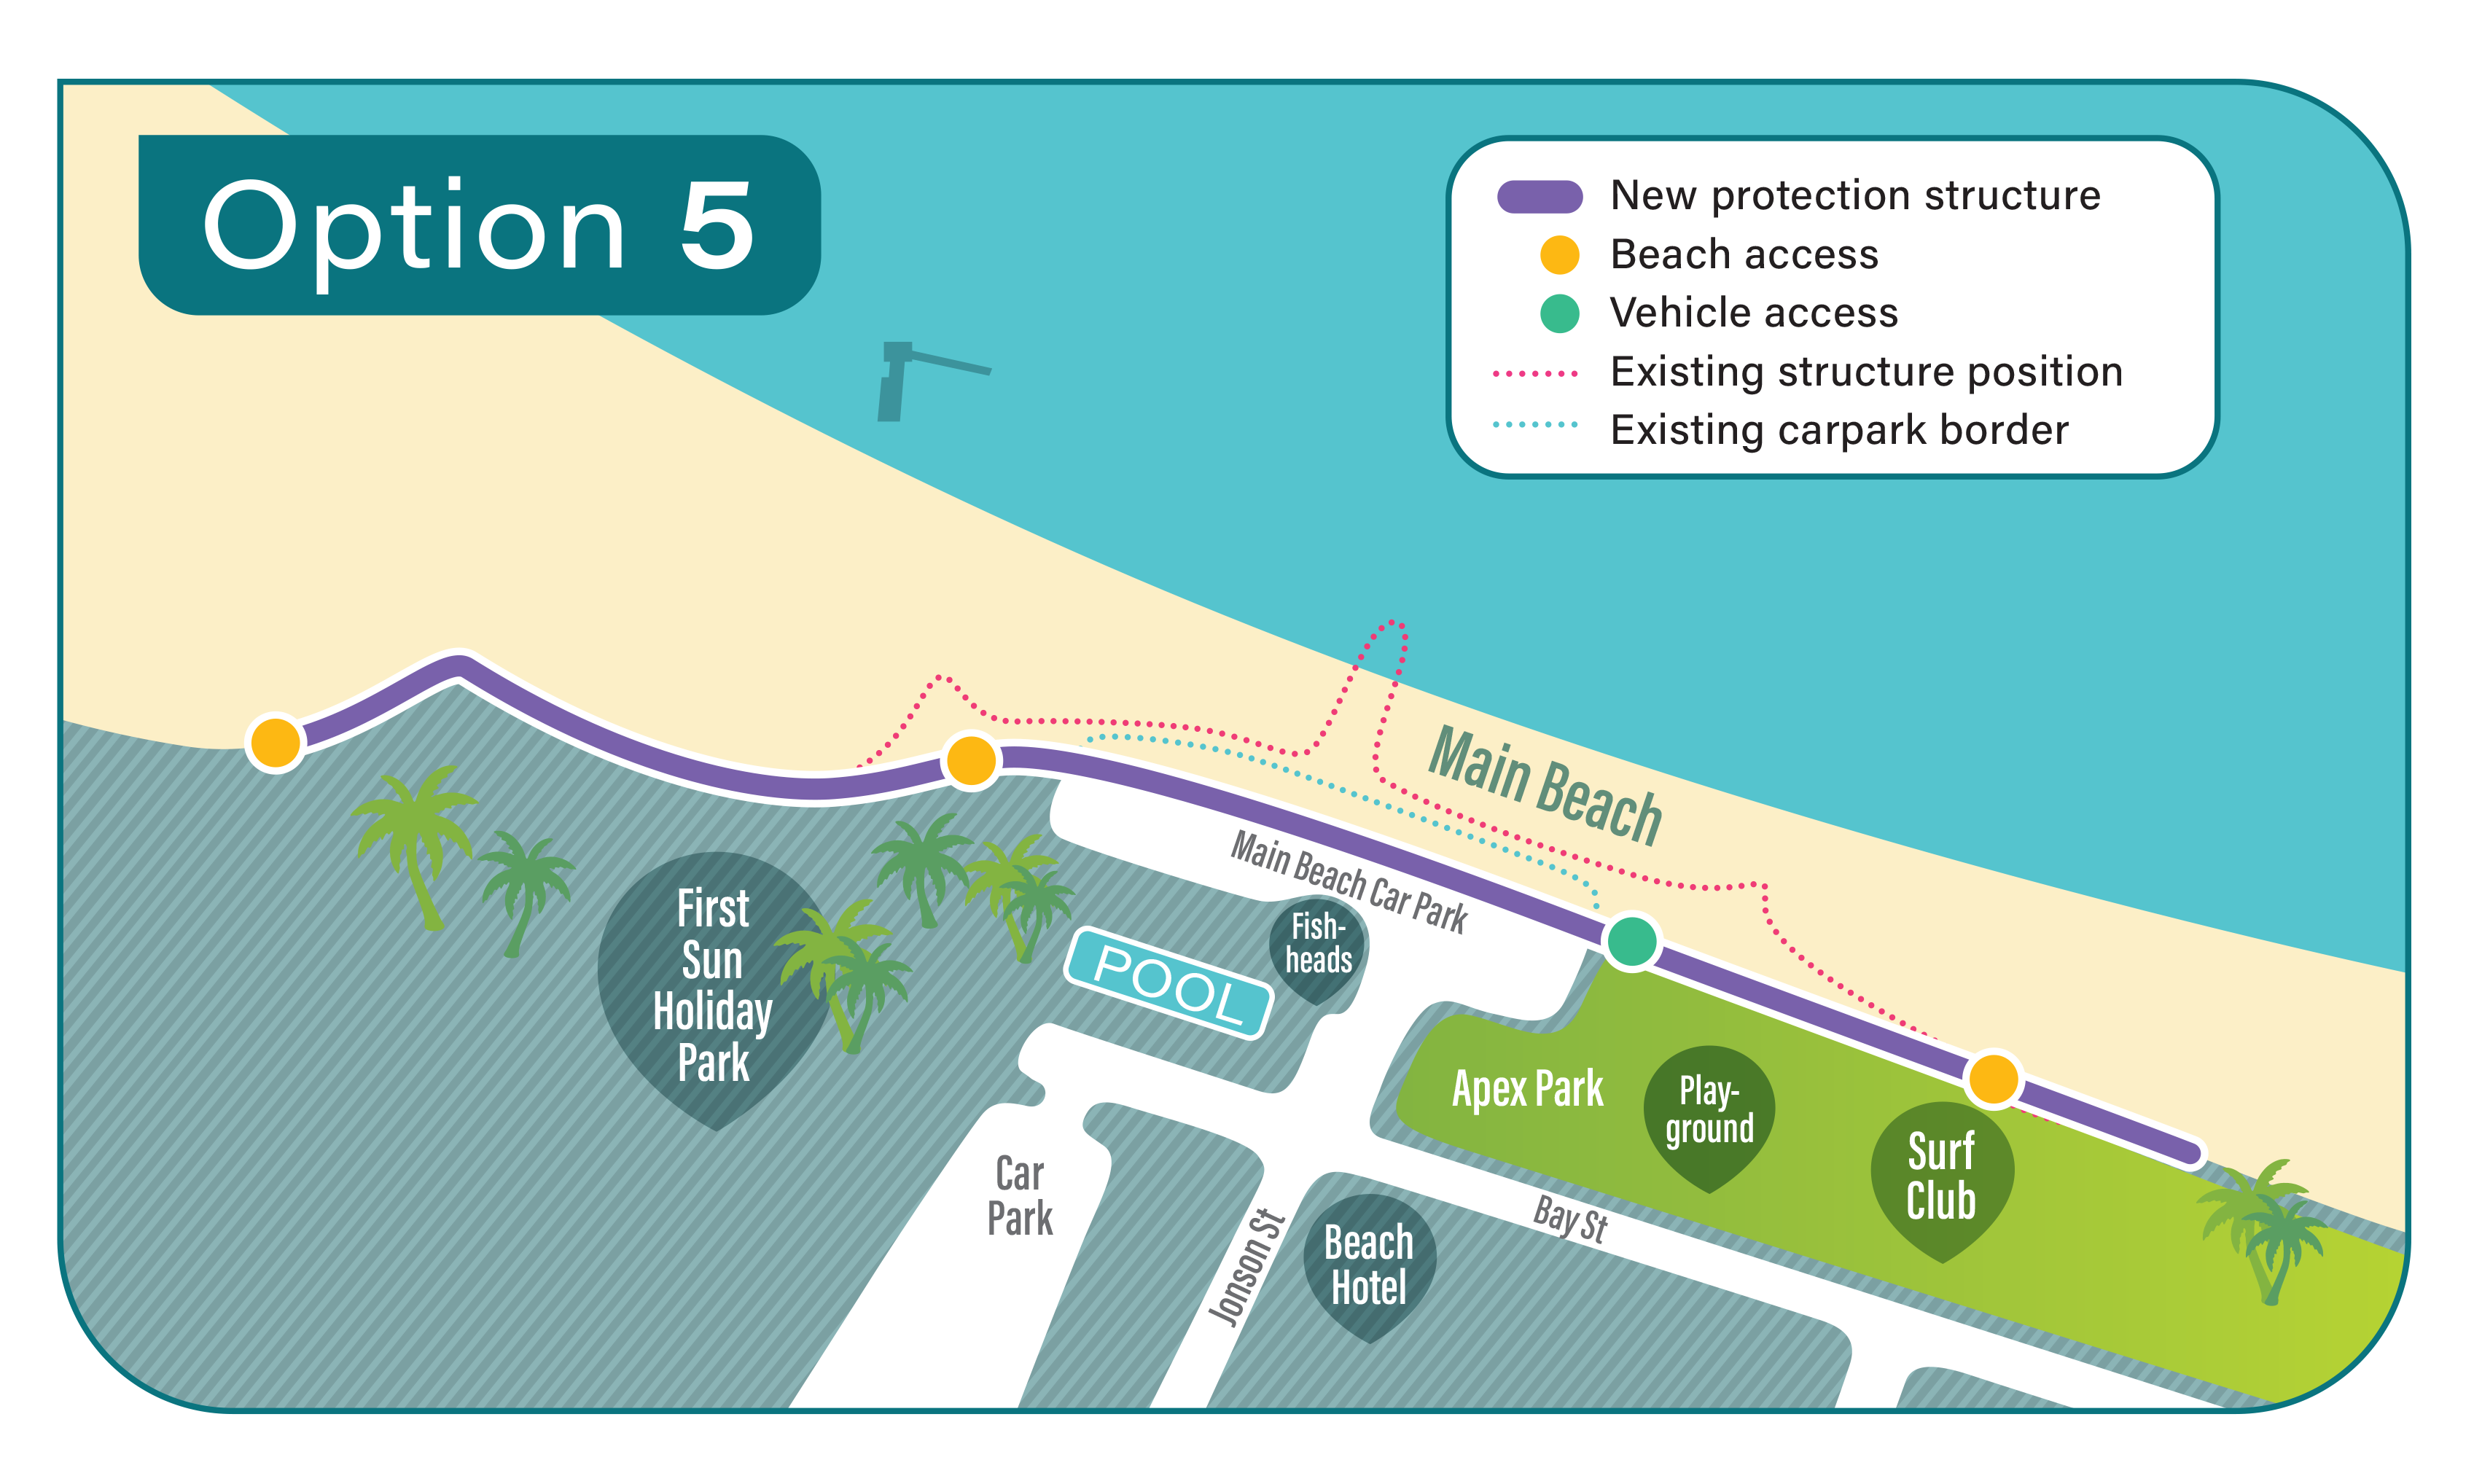 • Option 5 includes new protection structure, beach access, vehicle access, existing structure position, existing carpark border.